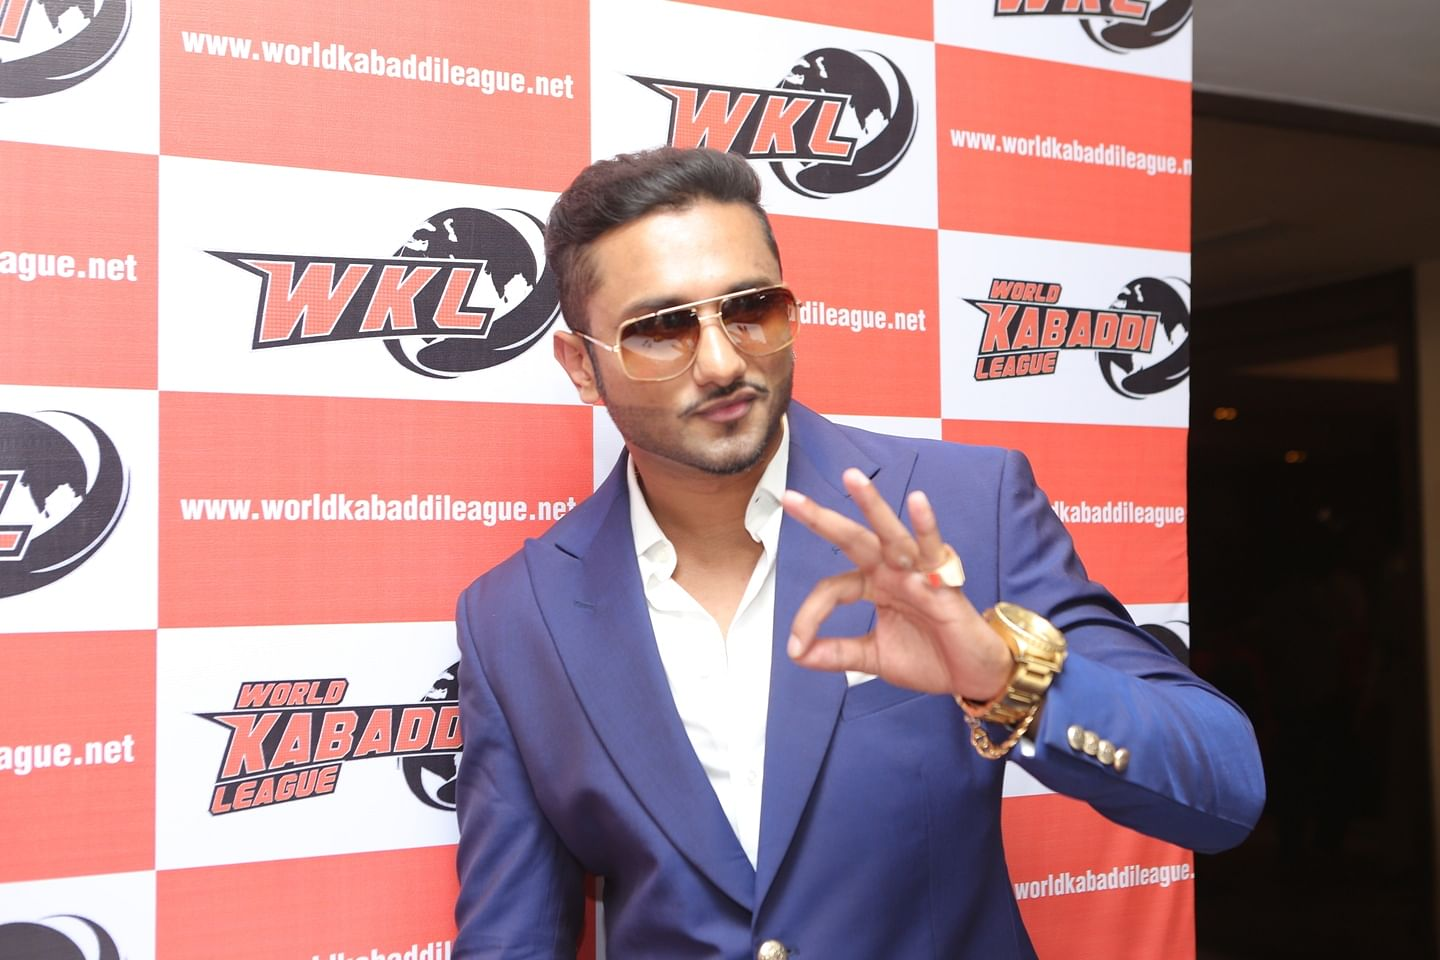 Singing sensation Yo Yo Honey Singh buys team in World Kabaddi League, names it 'Yo Yo Tigers'